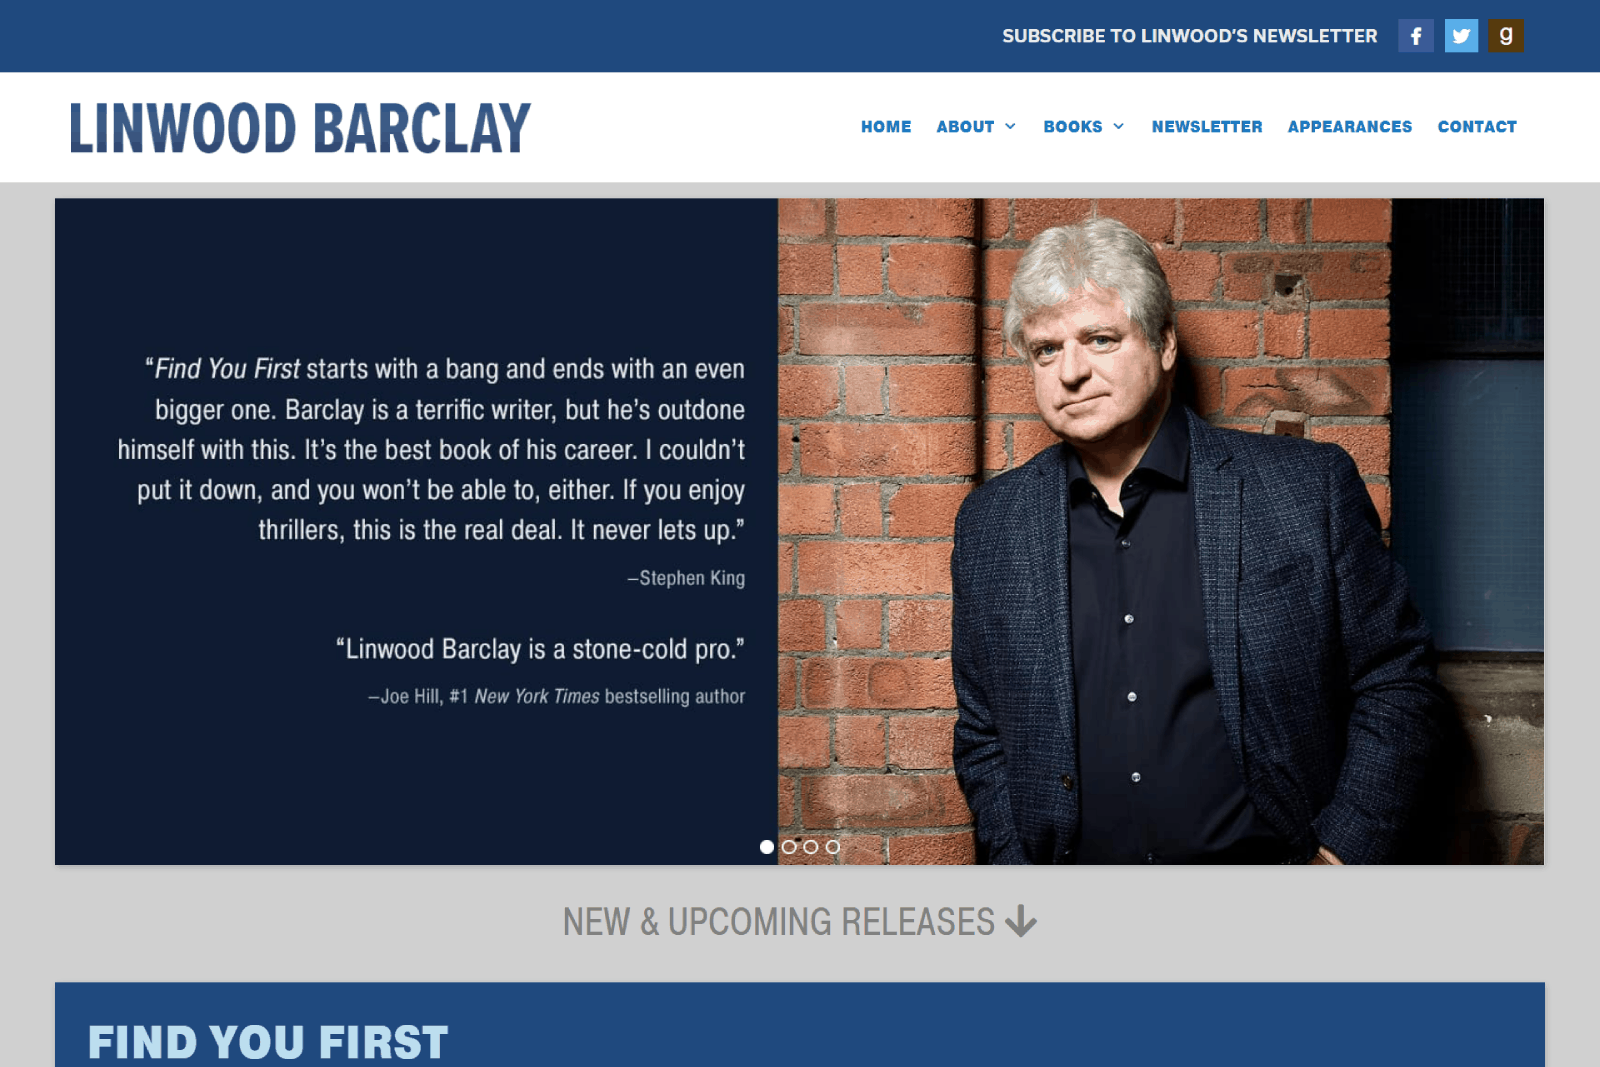 Linwood Barclay 2021 (Find You First)